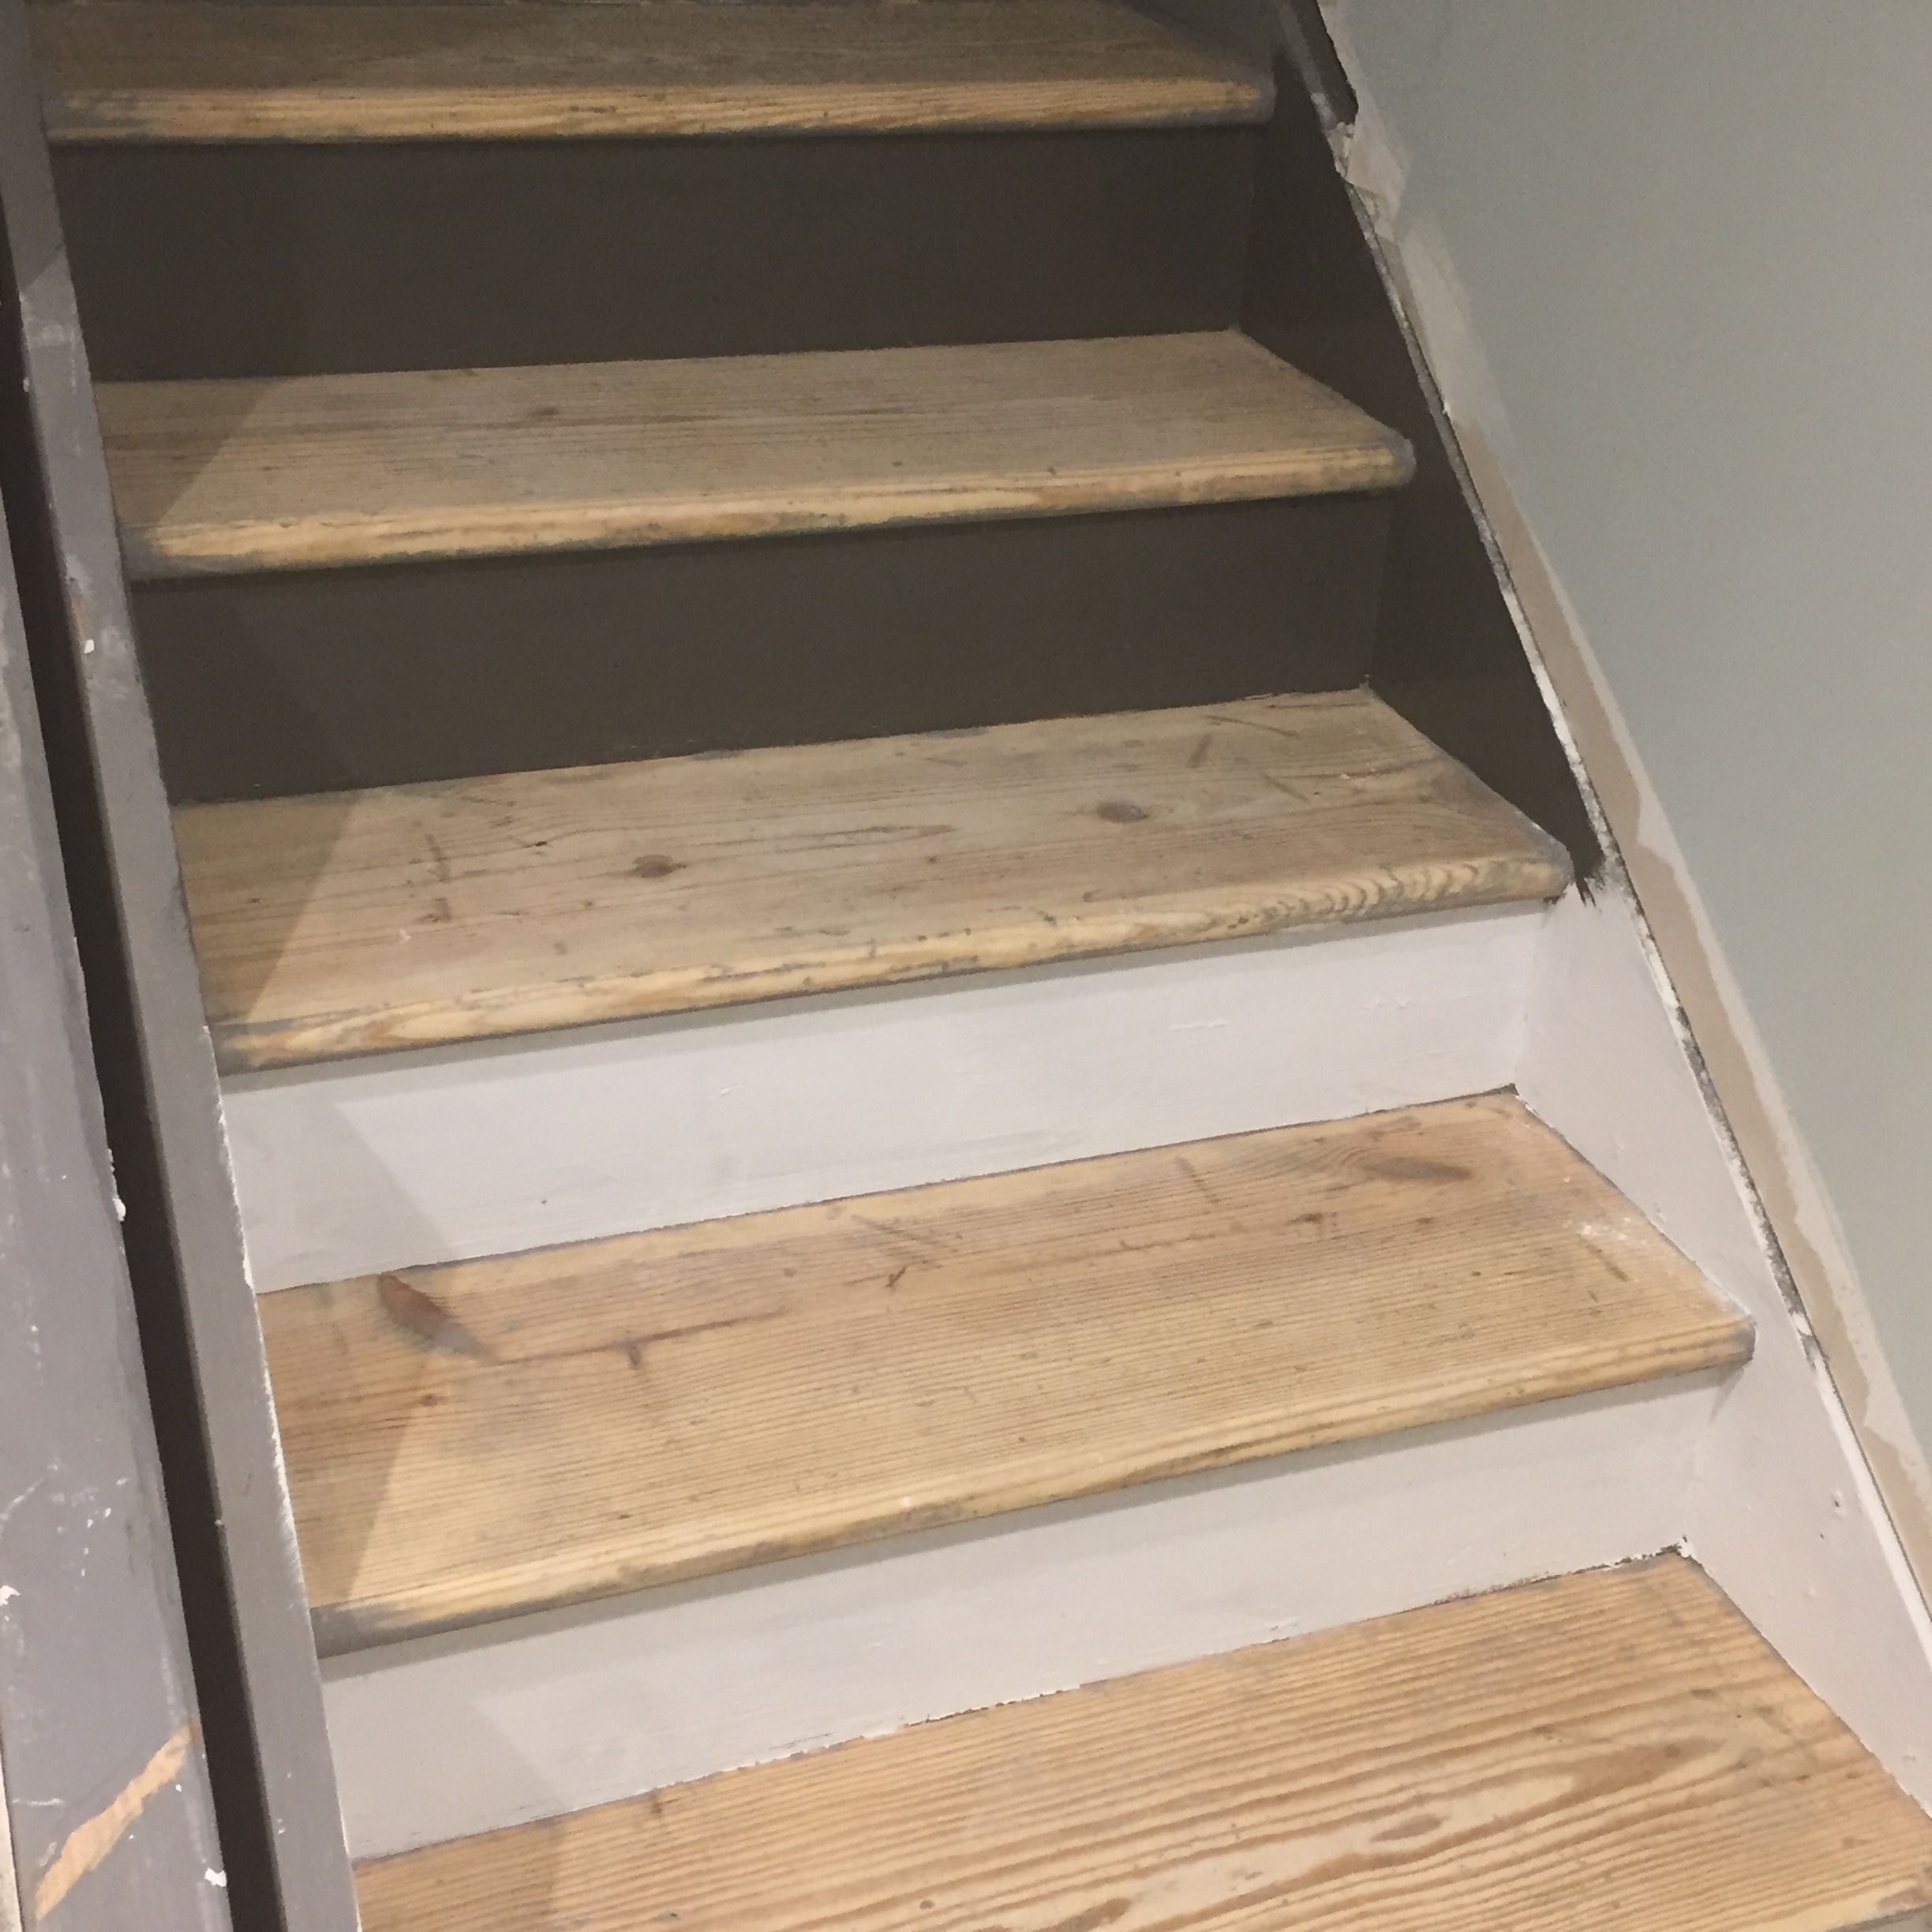 We debated Painting the Stair Risers white or Urbane Bronze